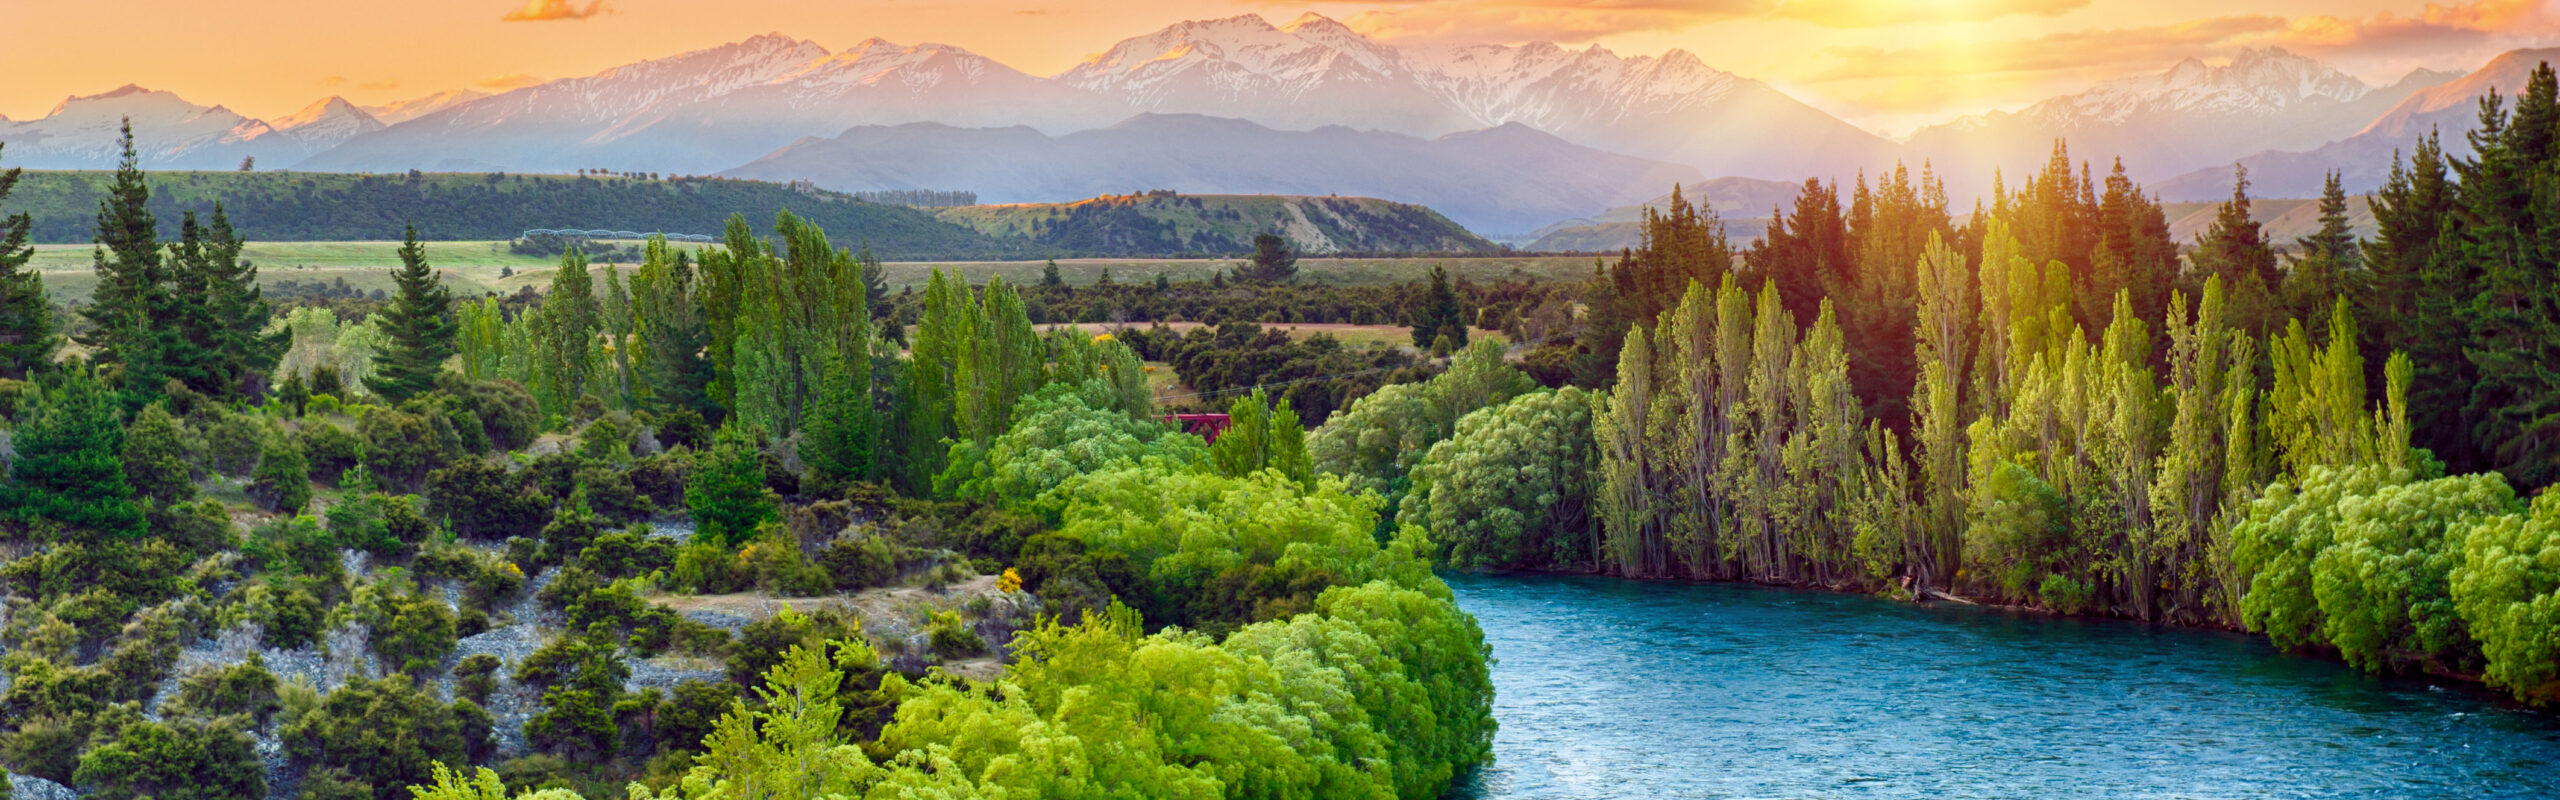 A clean river flows through a lush valley, with mountains in the background